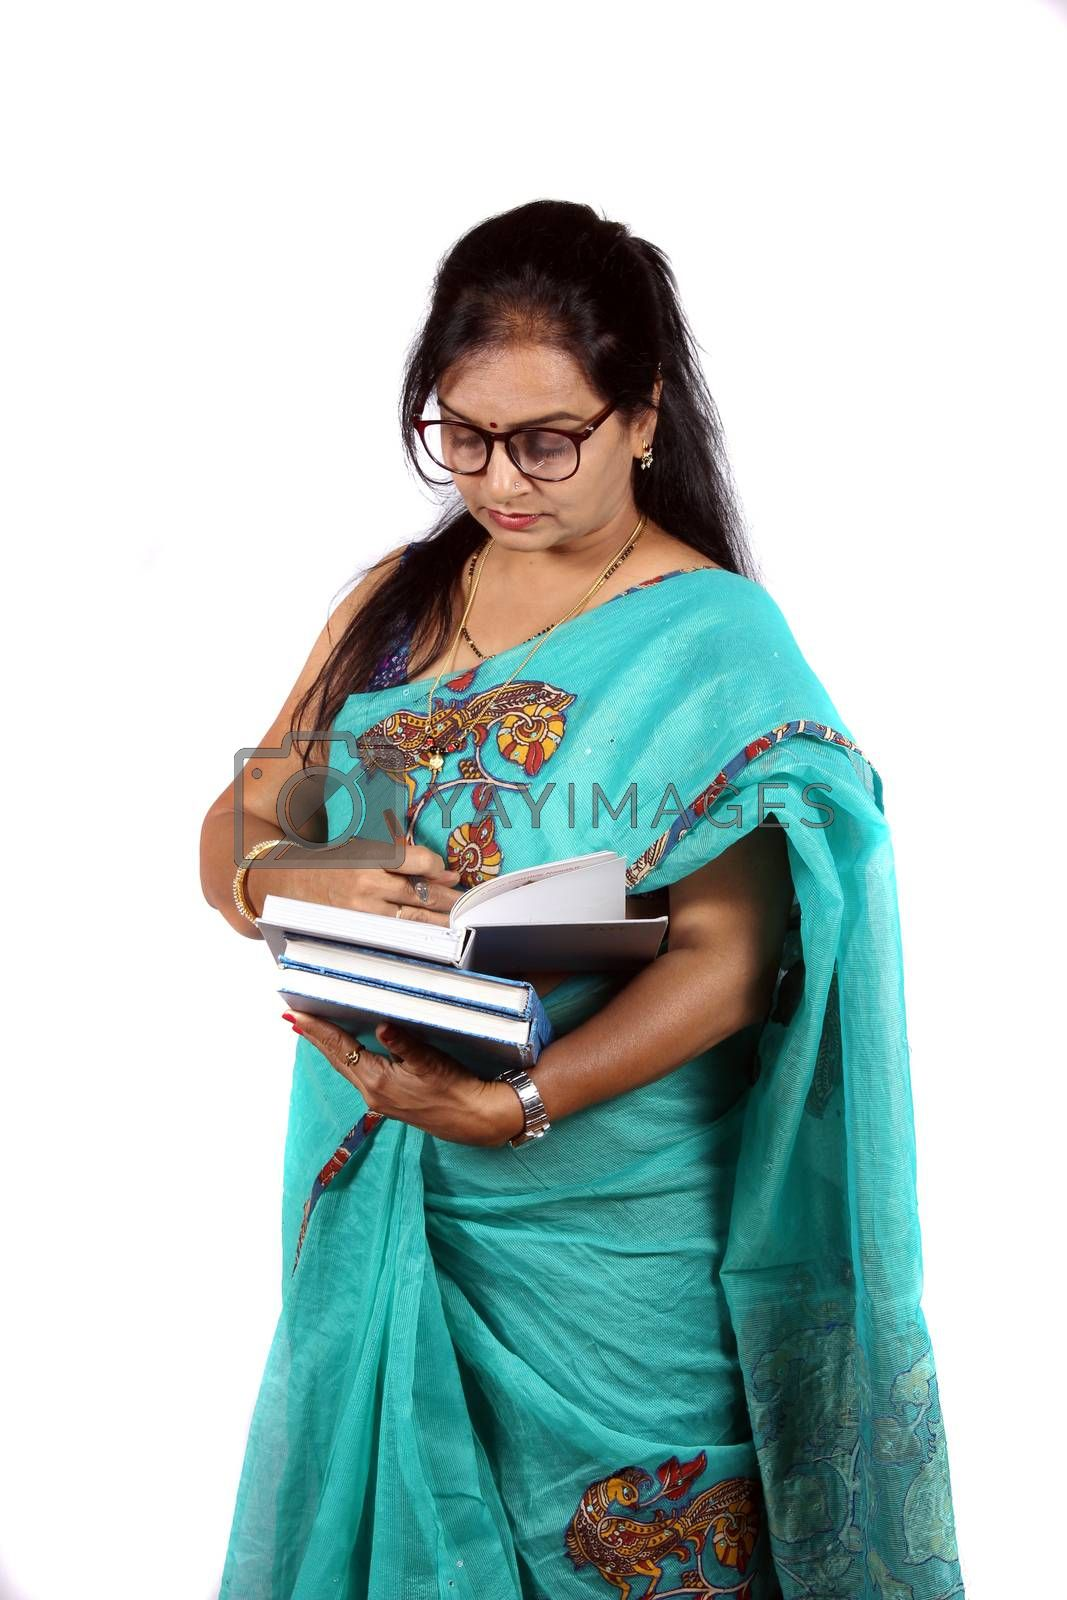 A middle aged Indian woman who is a teacher reading her books before lecture, on white studio background.